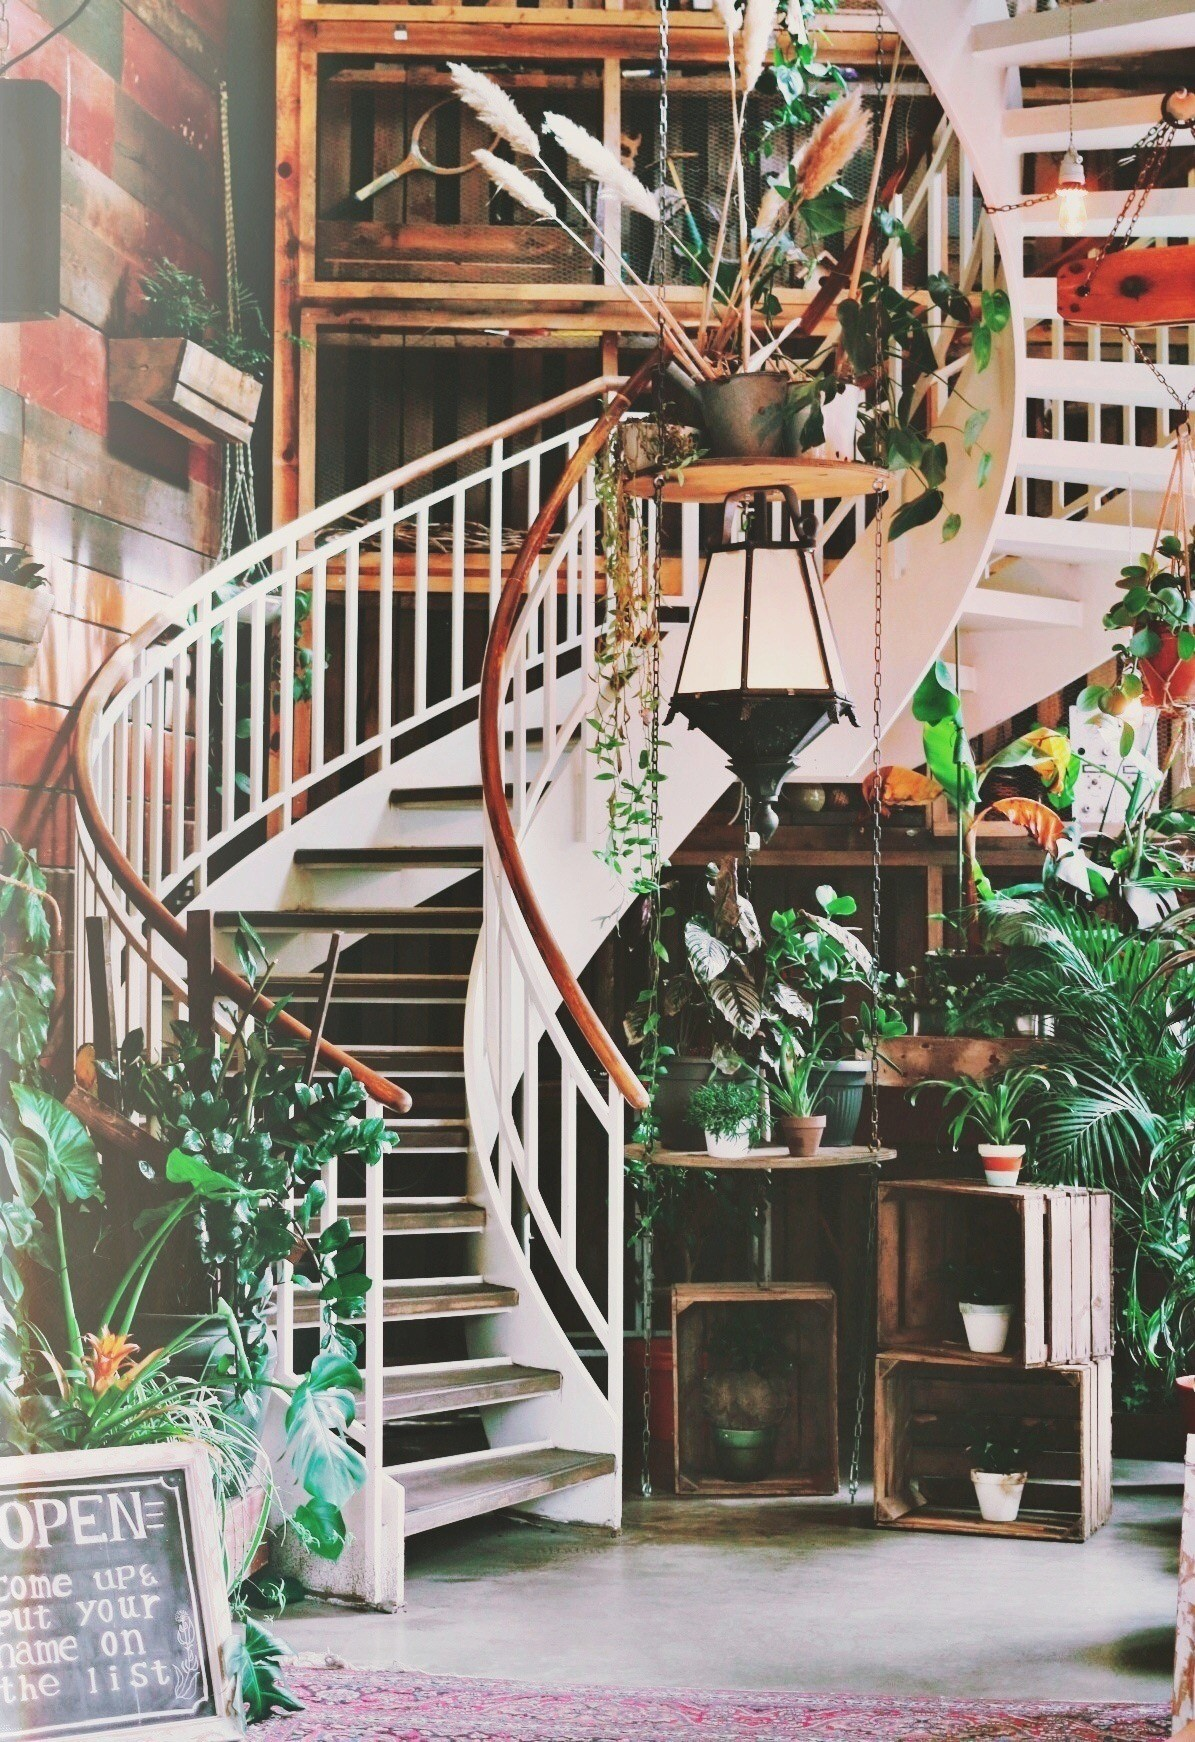 The famous stairway at House of Small Wonder